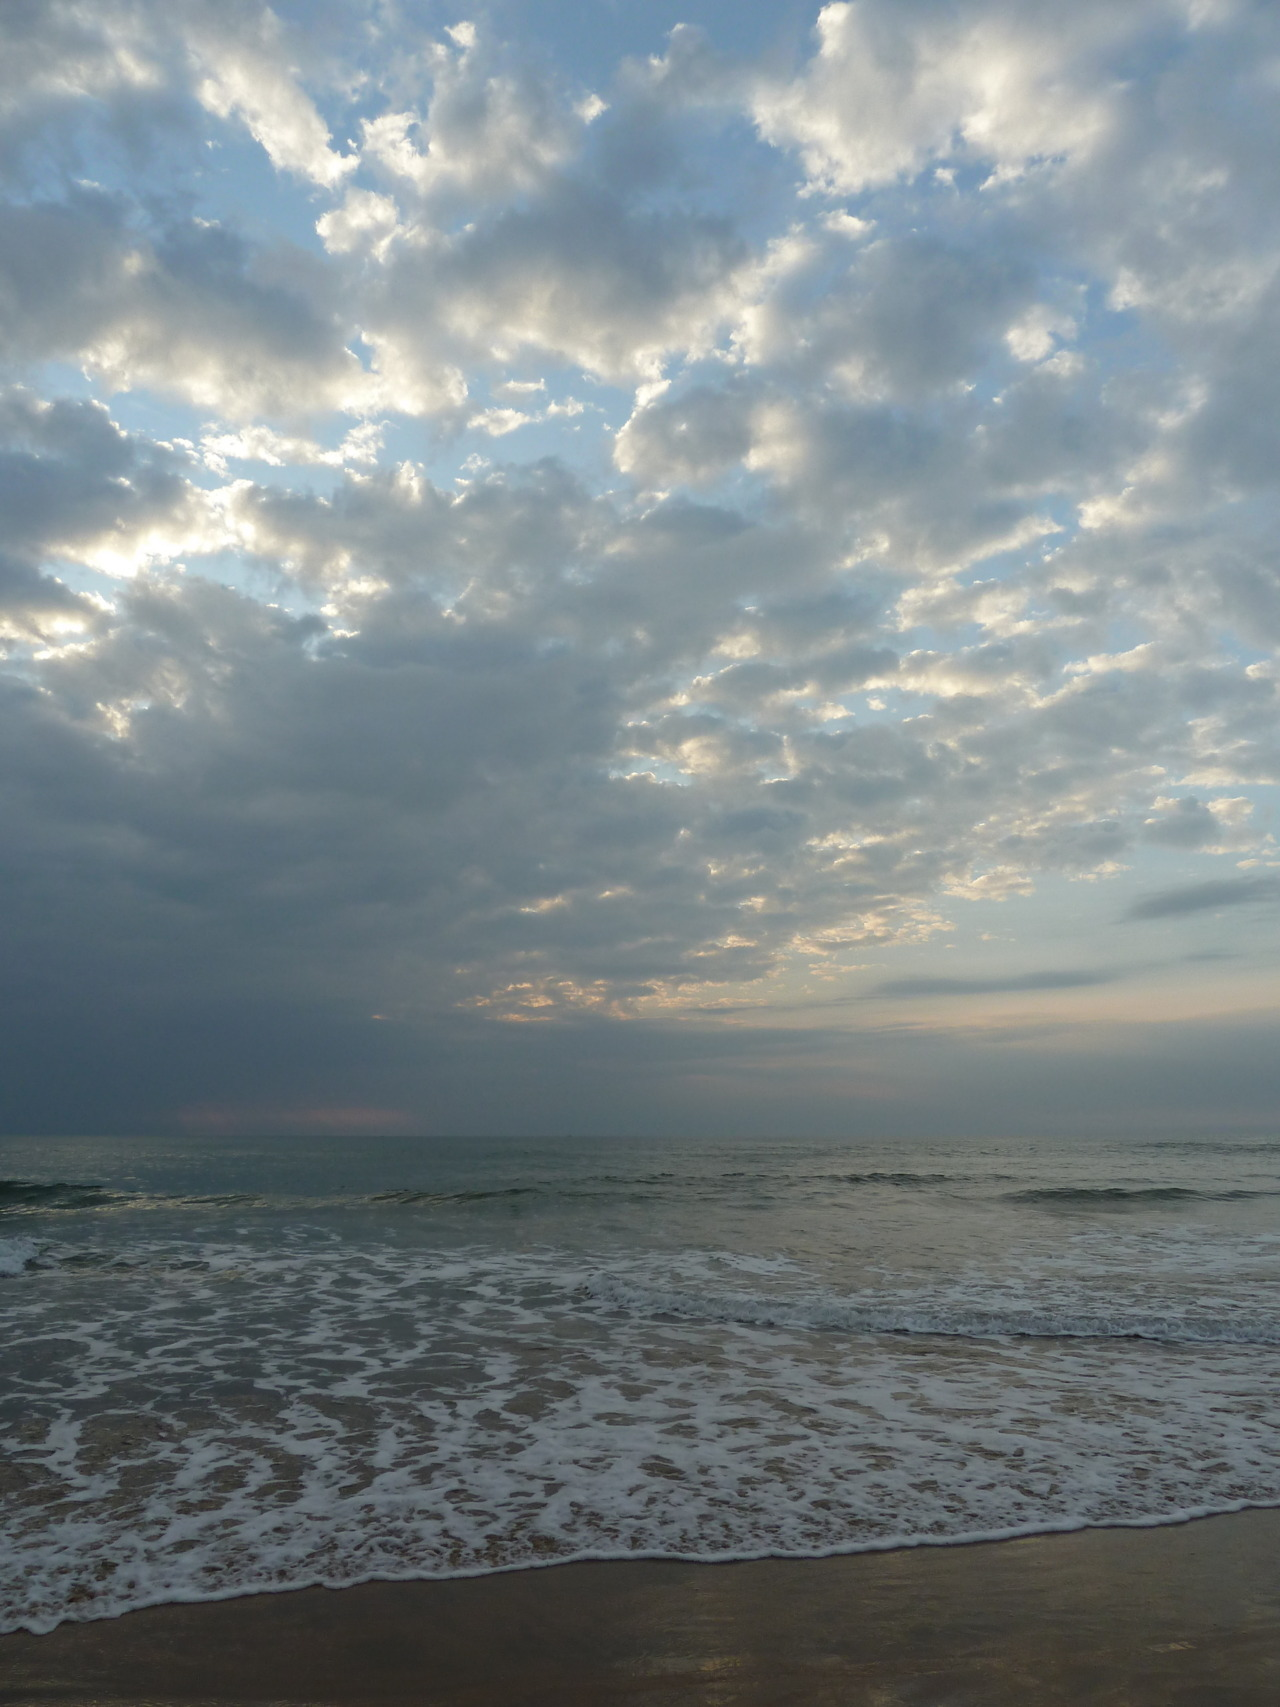 Clouds over the Arabian Sea